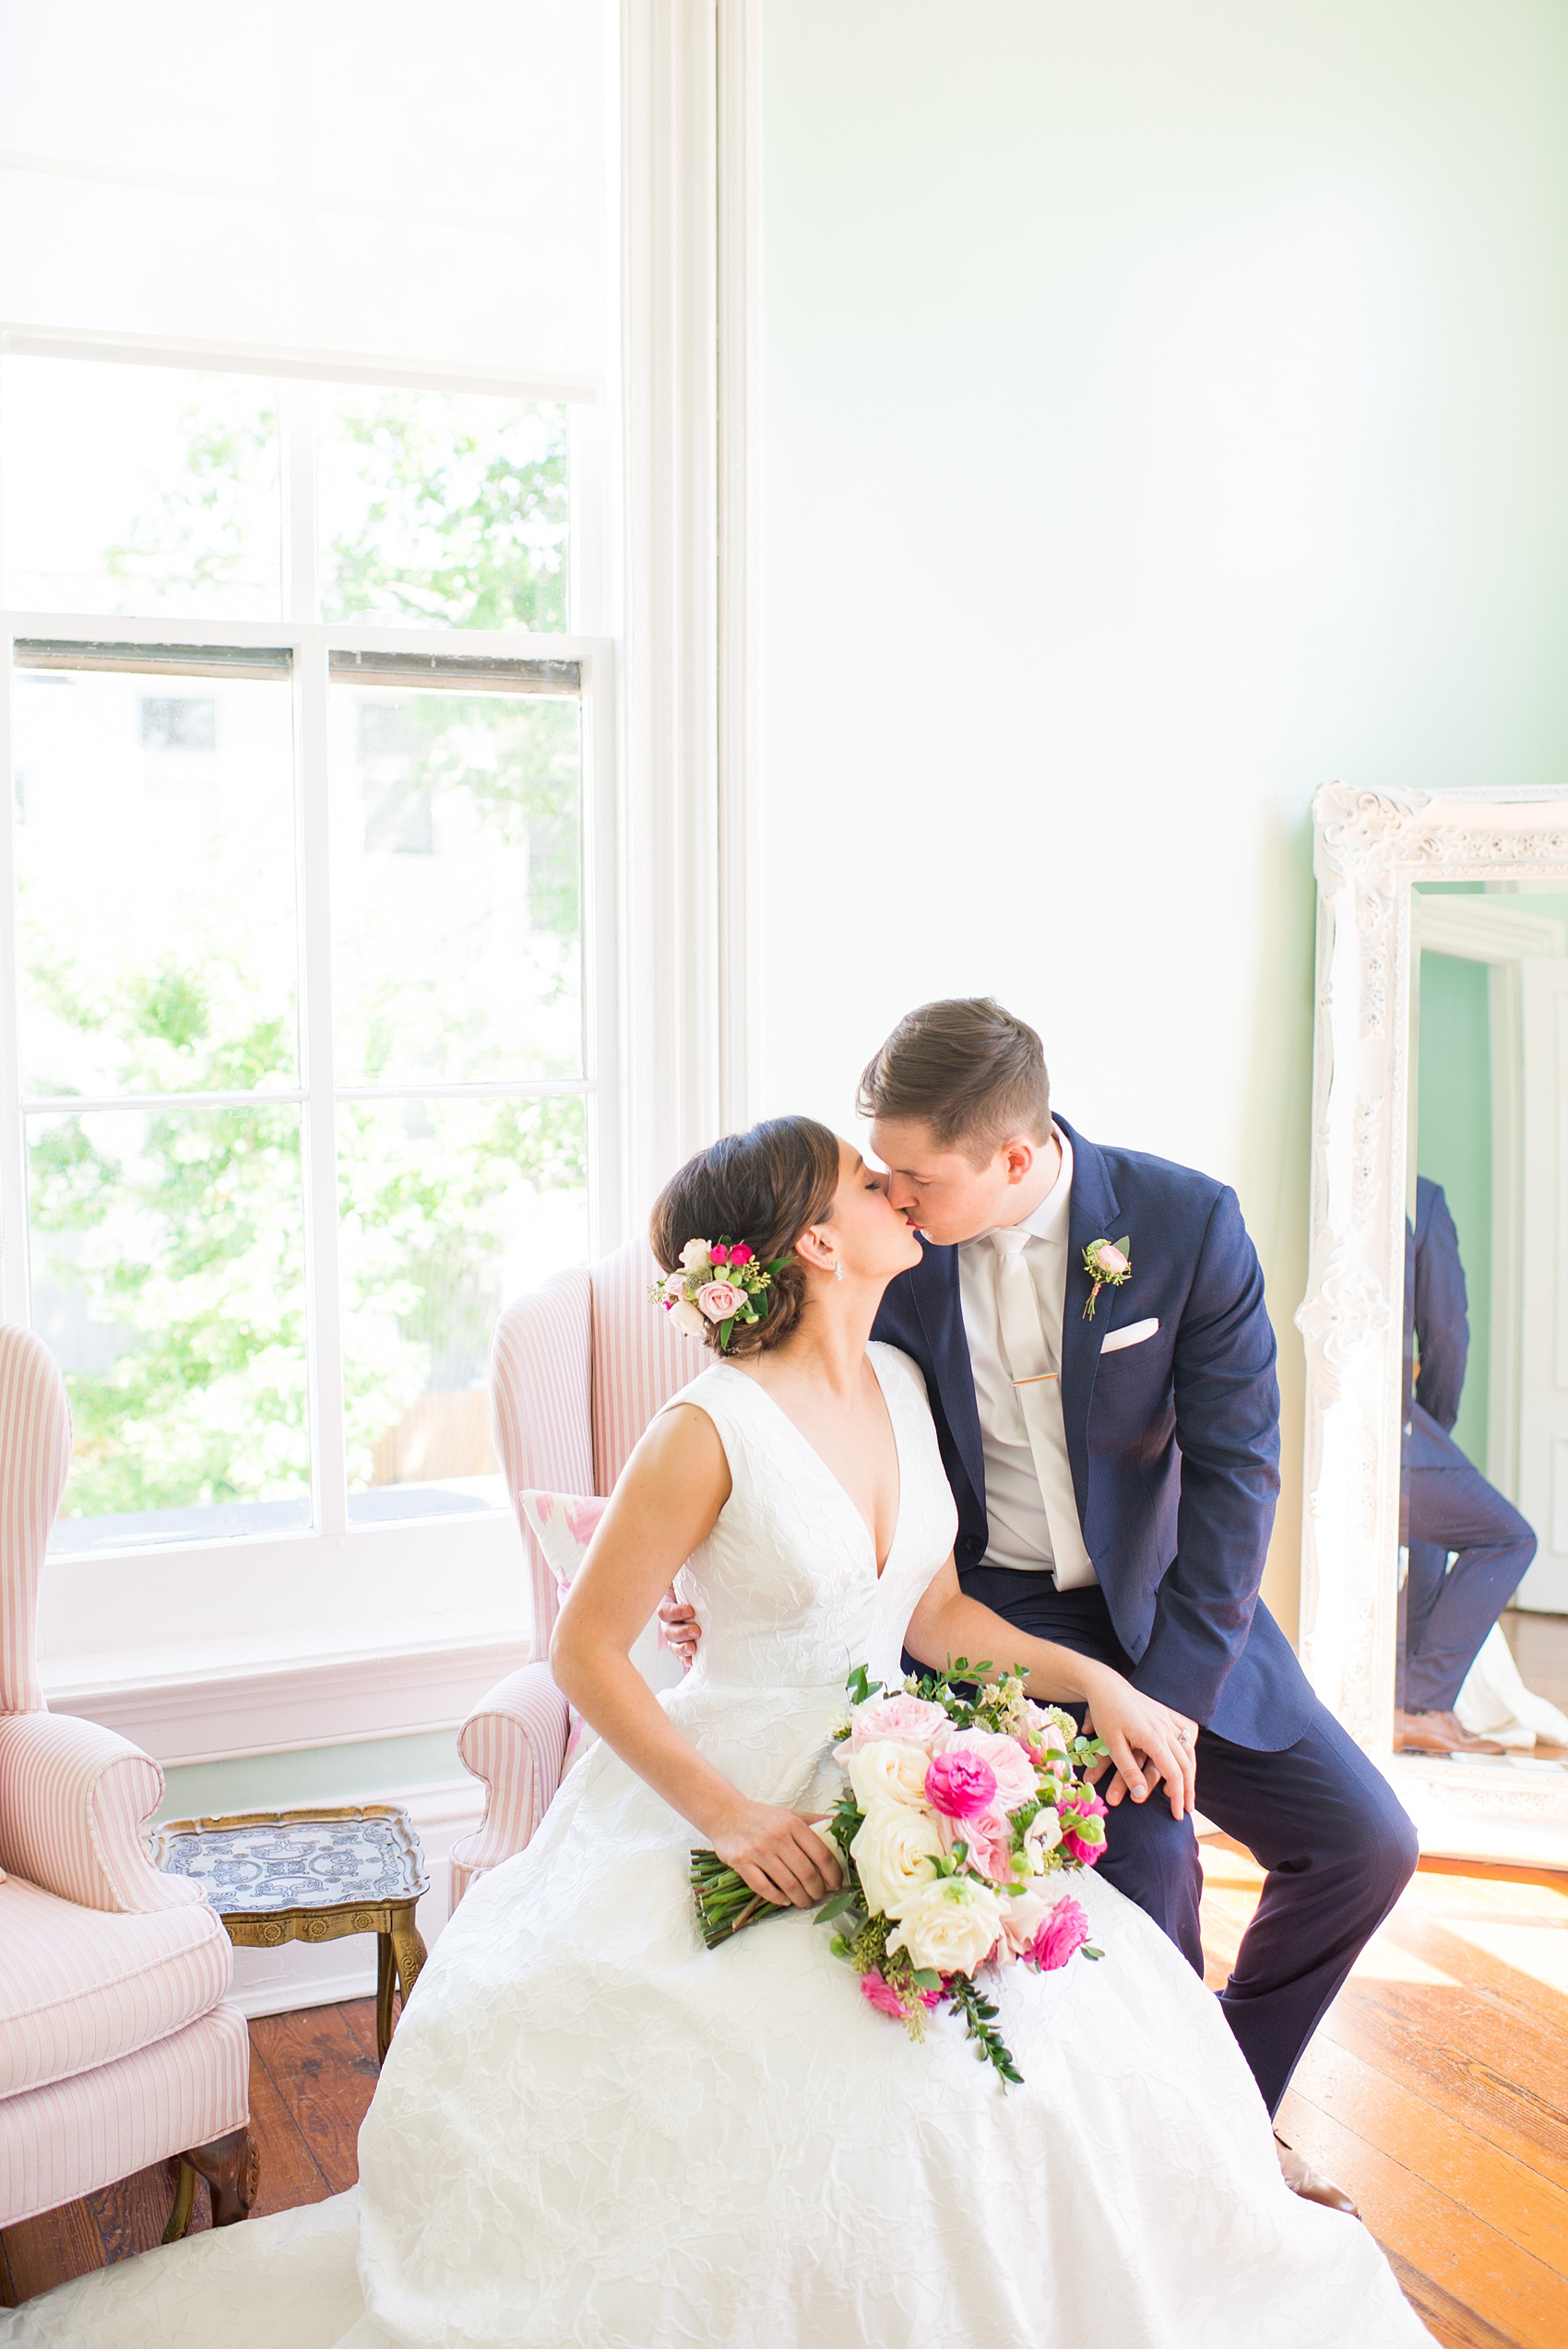 Nc Mikkel Paige Photography Pictures From A Wedding At Merrimon Wynne House In Raleigh